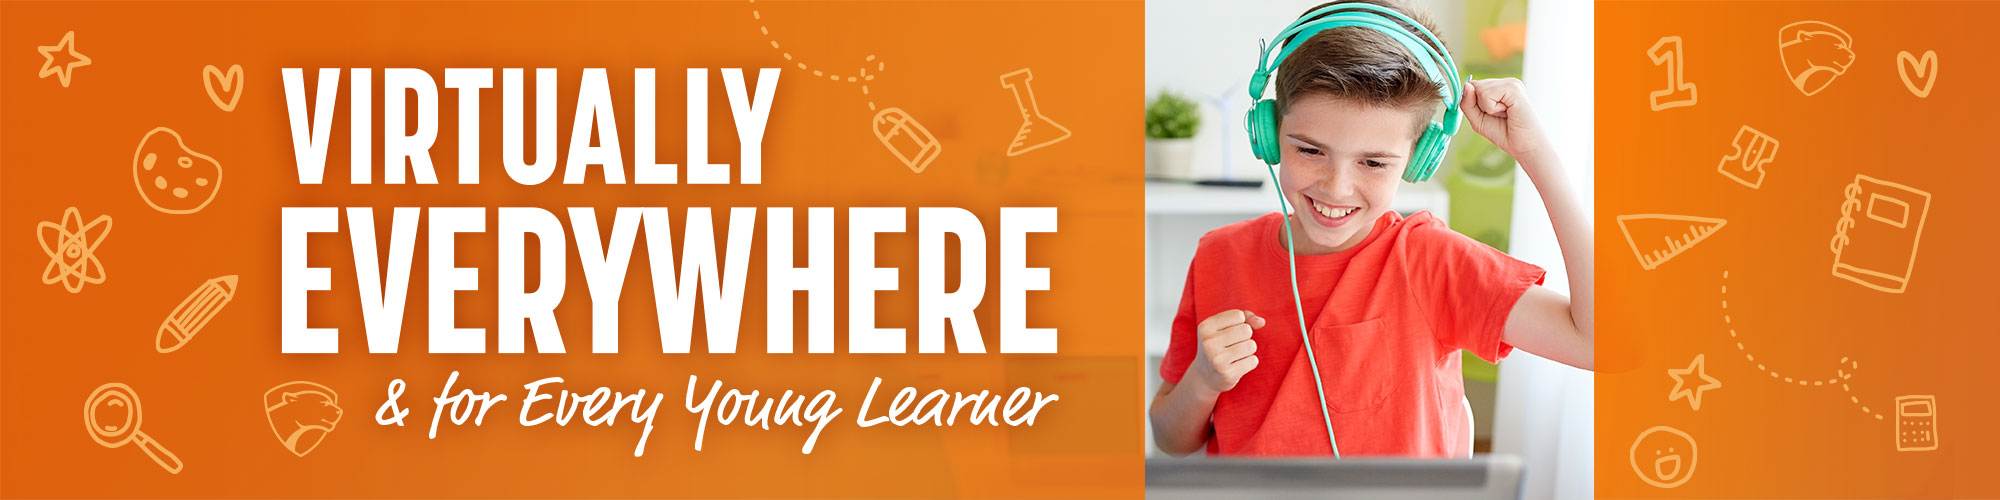 Virtually Everywhere & For Every Young Learner